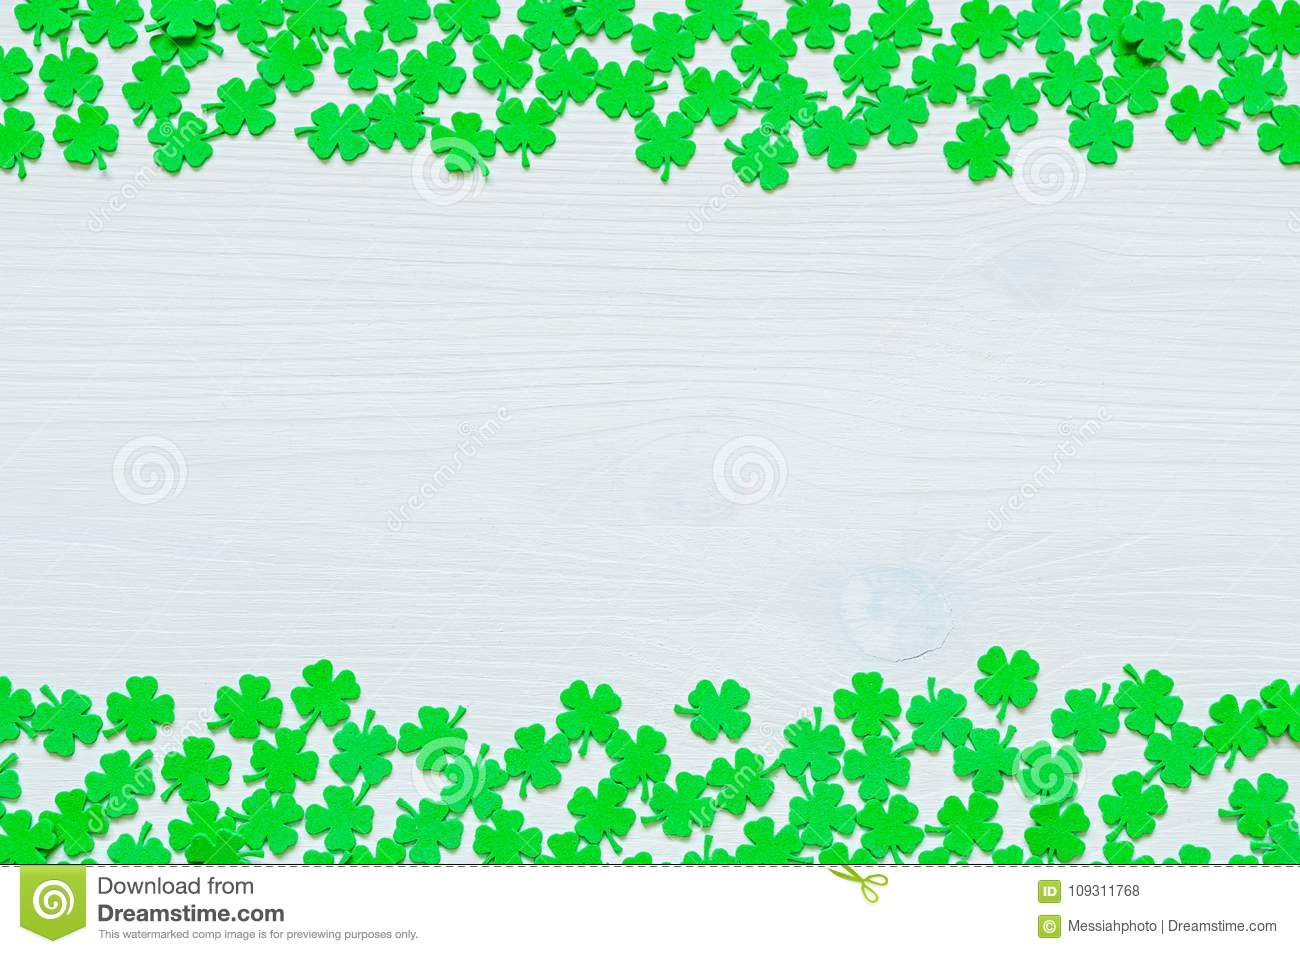 St Patricks Day background with both side borders and green quatrefoils